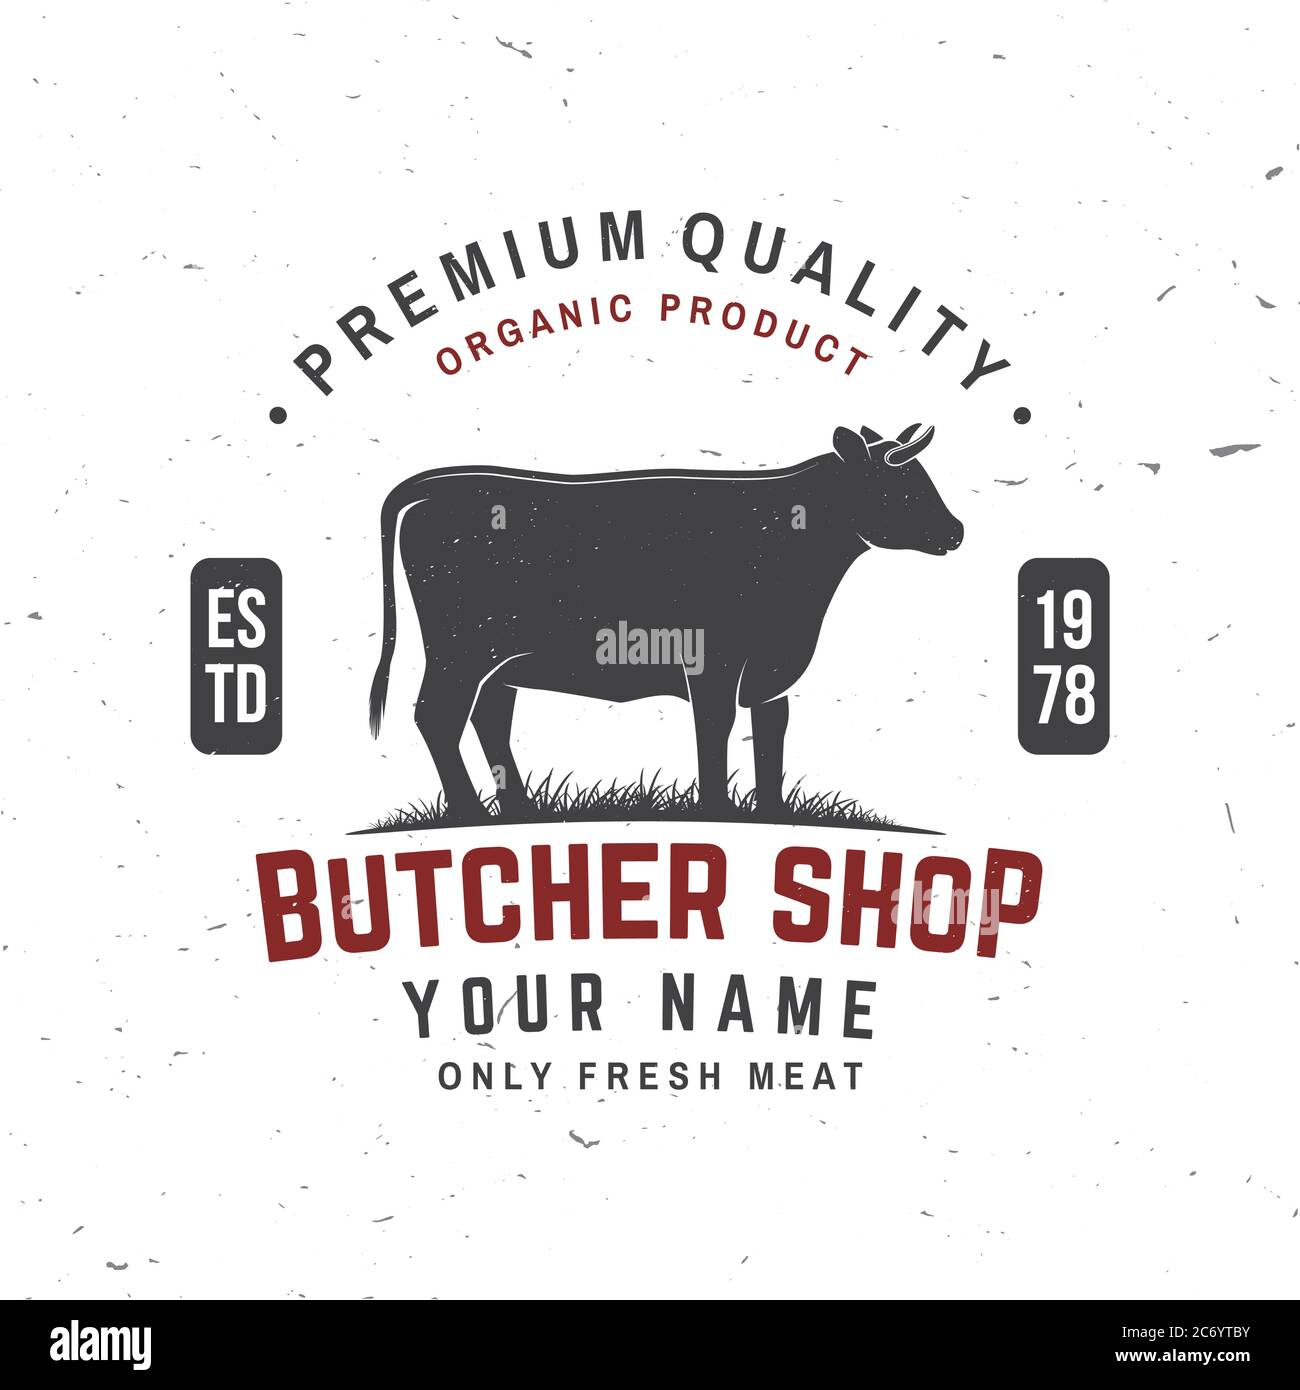 Butcher shop Badge or Label with cow, Beef. Vector illustration. Vintage typography logo design with cow silhouette. Elements on the theme of the butchery meat shop, market, restaurant business. Stock Vector